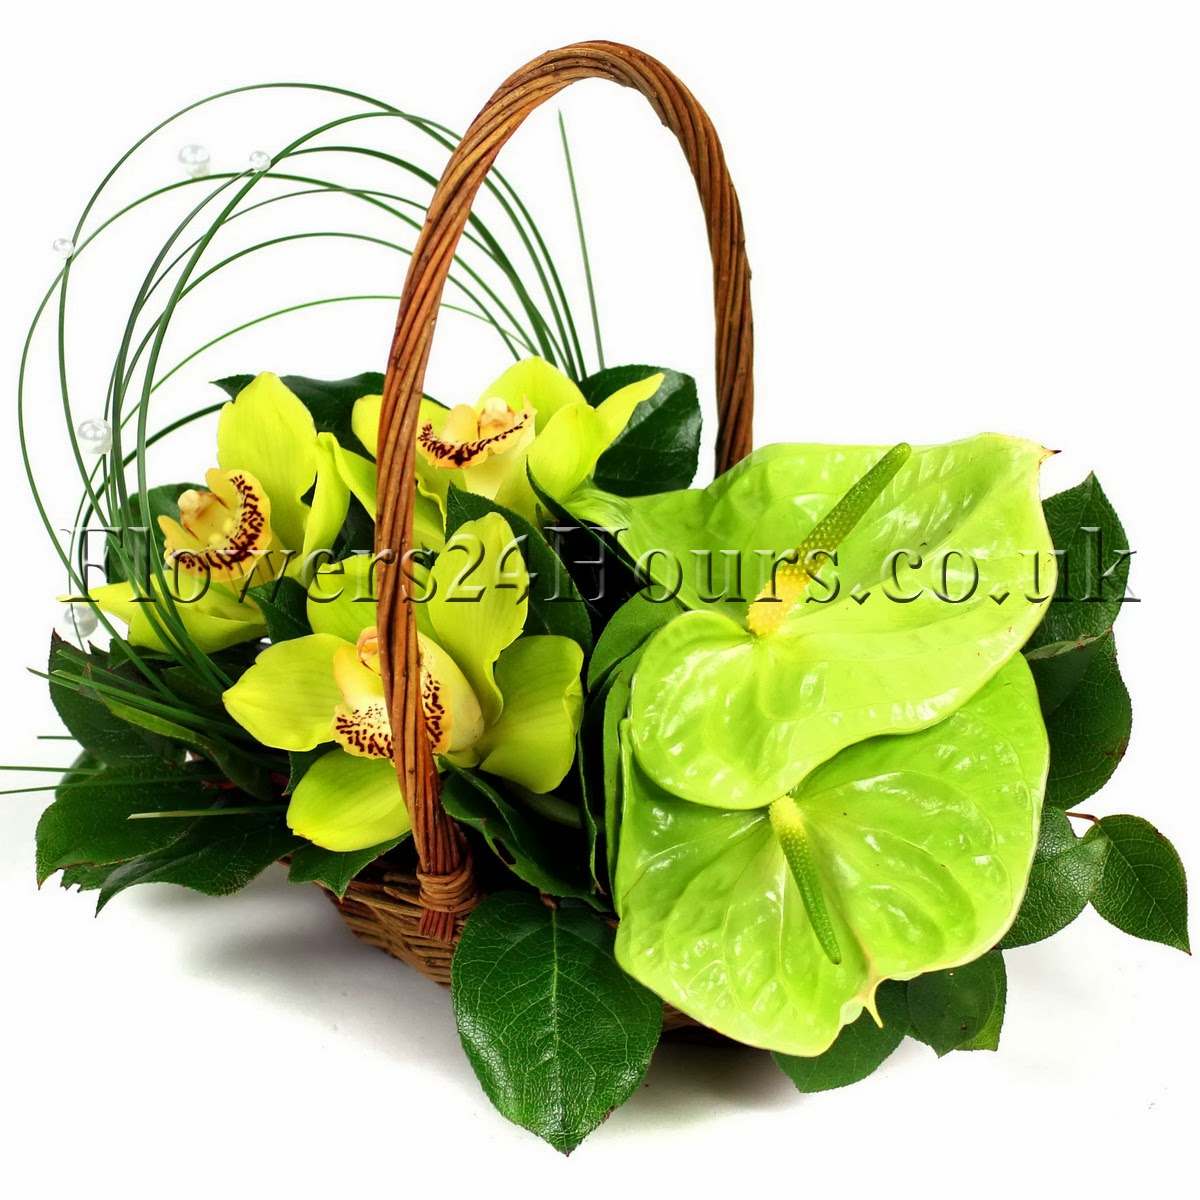 Uk flowers delivery company flowers24hours arranges this seasons fairy forest flowers to deliver uk gifts and flowers by delivery next day and same day izmirmasajfo Images